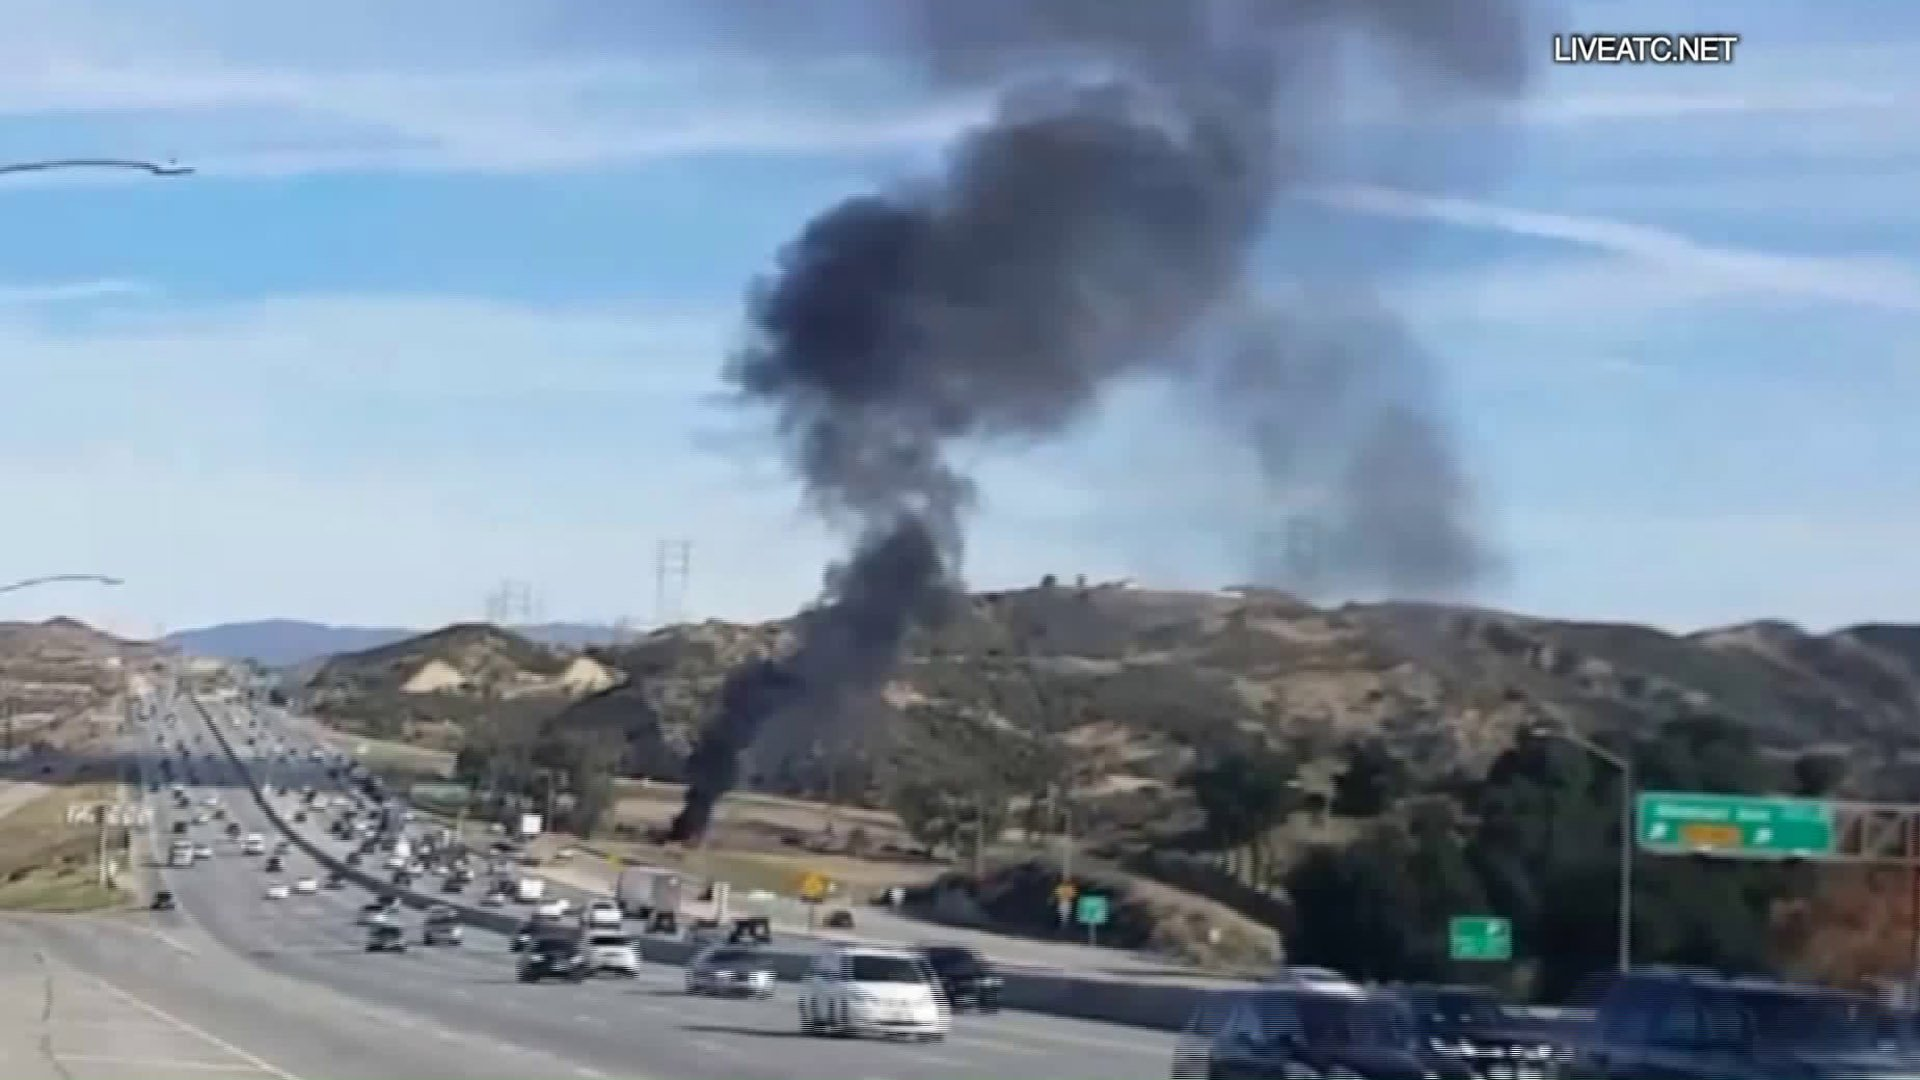 Black smoke rises from a small plane that crashed near the 14 Freeway in Santa Clarita on Jan. 4, 2019. (Credit: Liveatc.net)